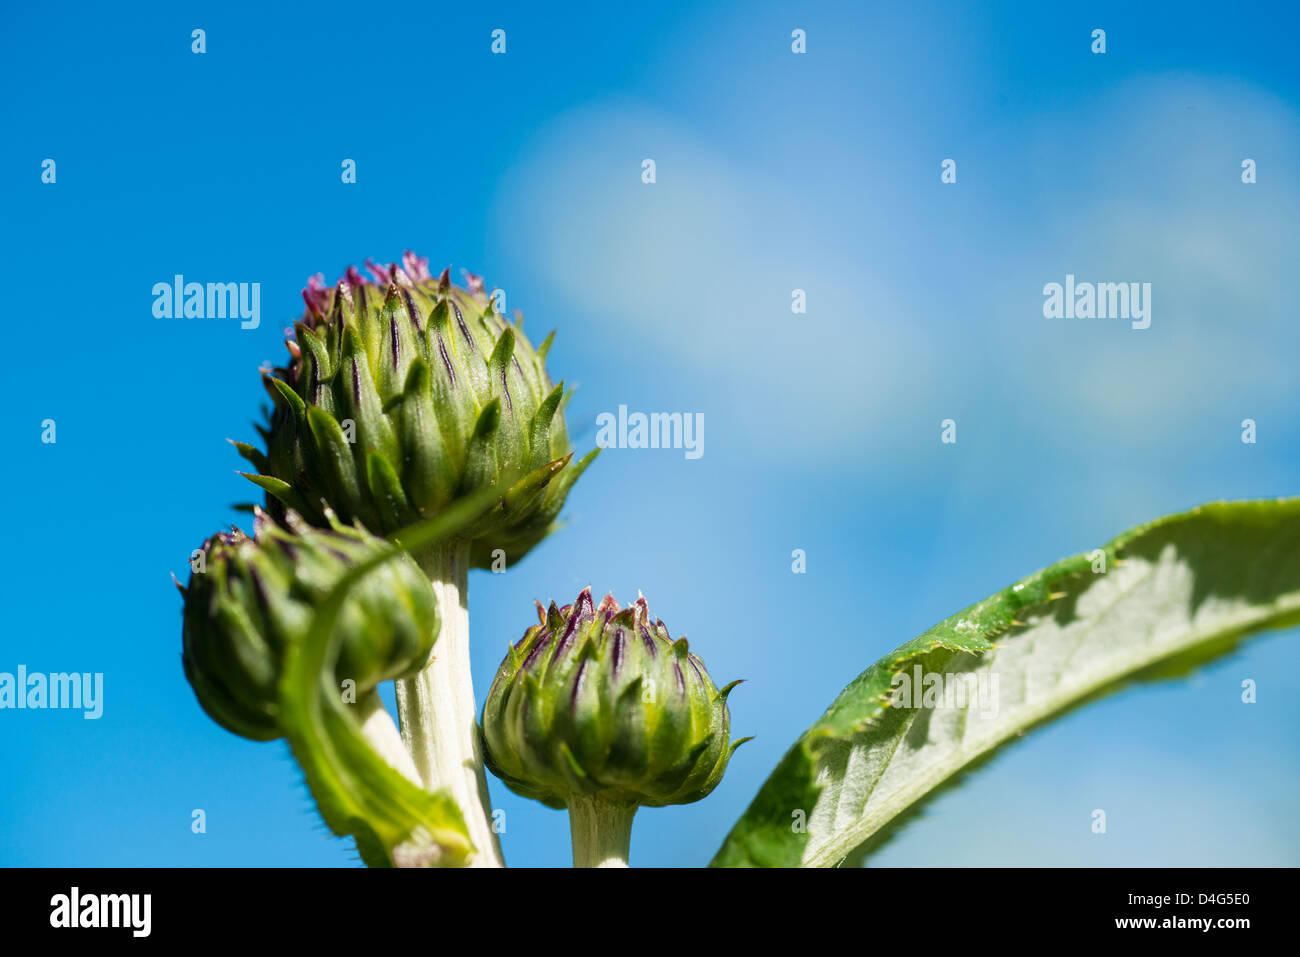 Three buds of the thistle Echinops against a blue sky - Stock Image